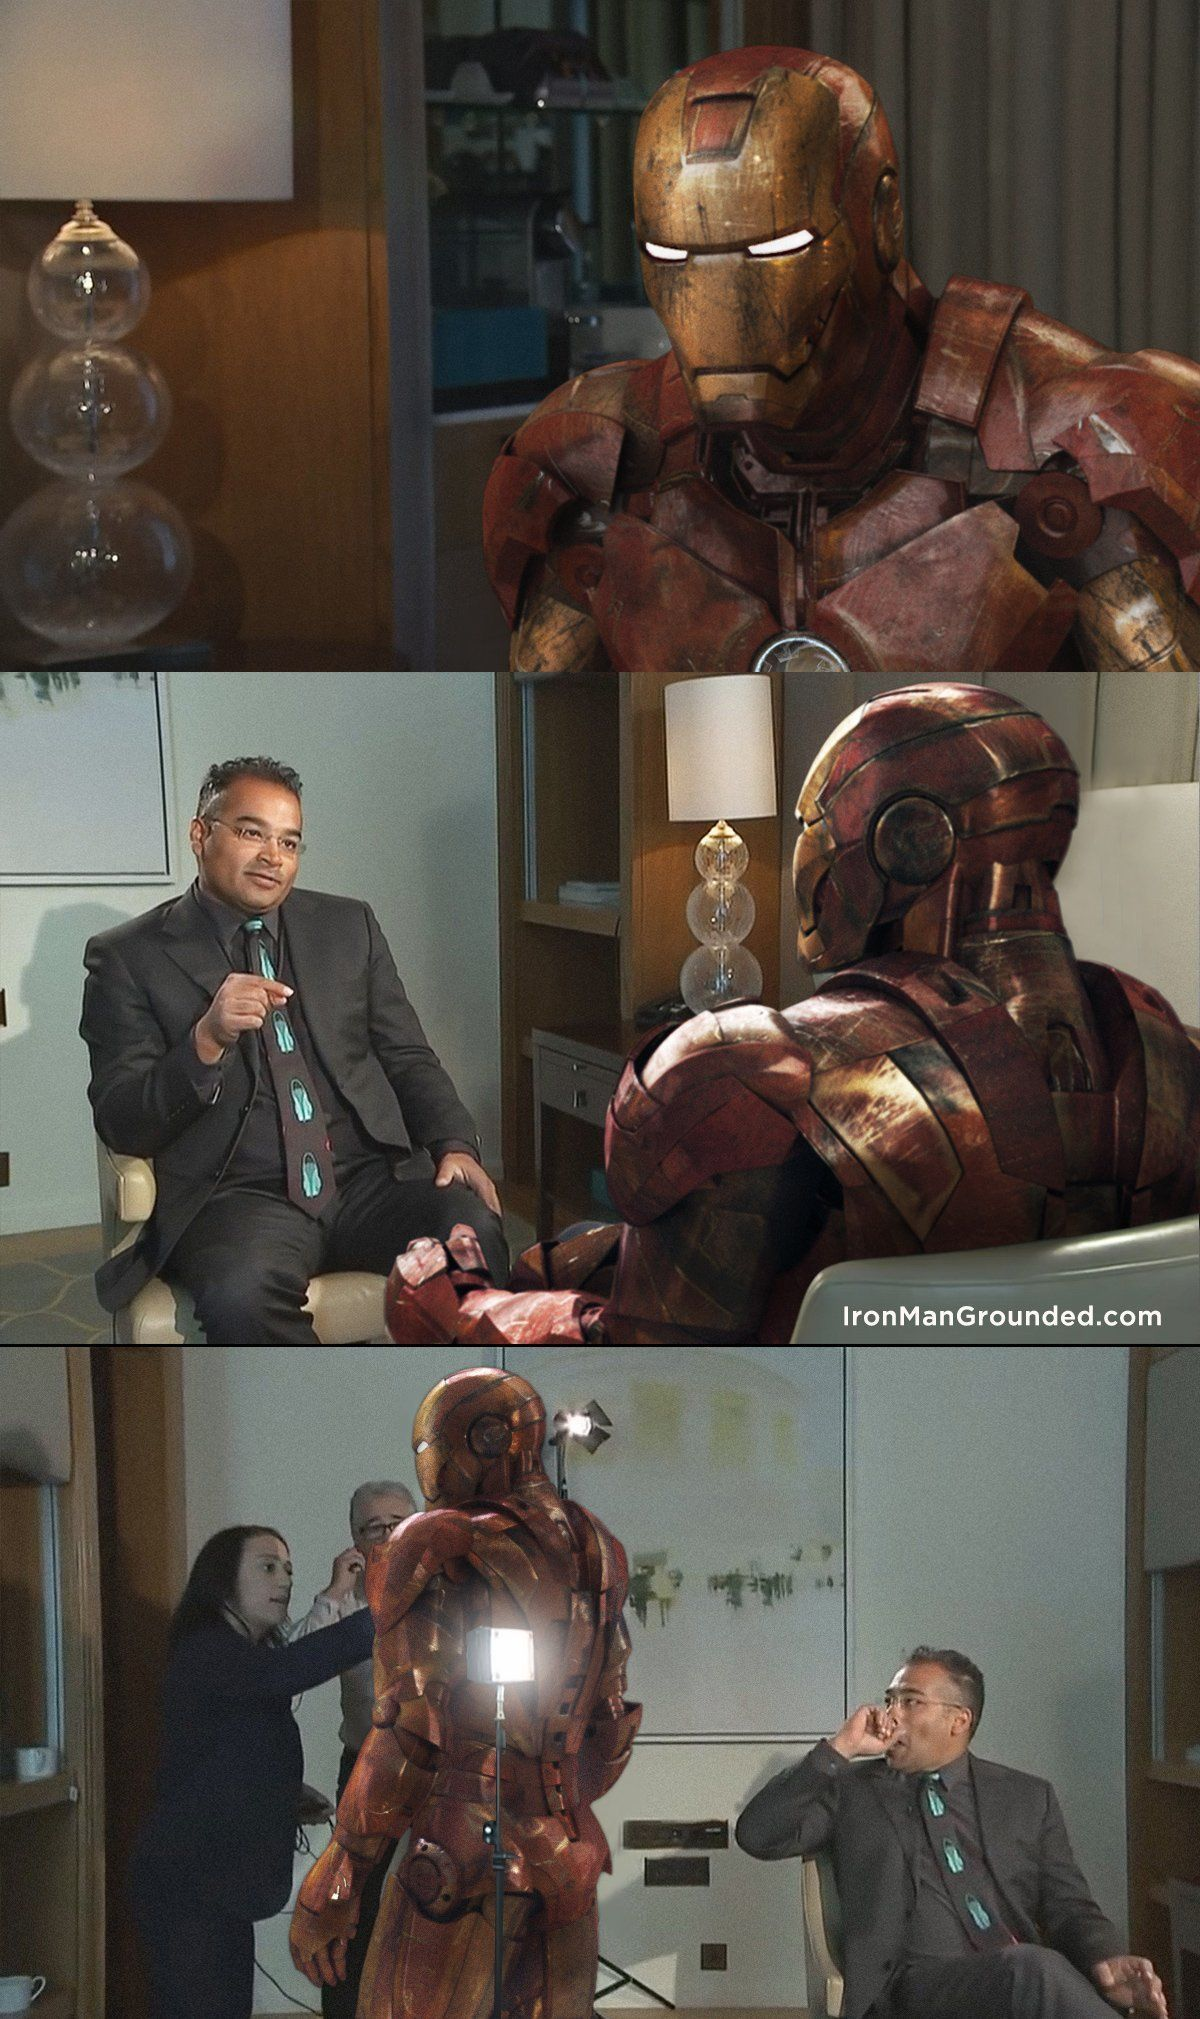 iron_man_grounded_interview